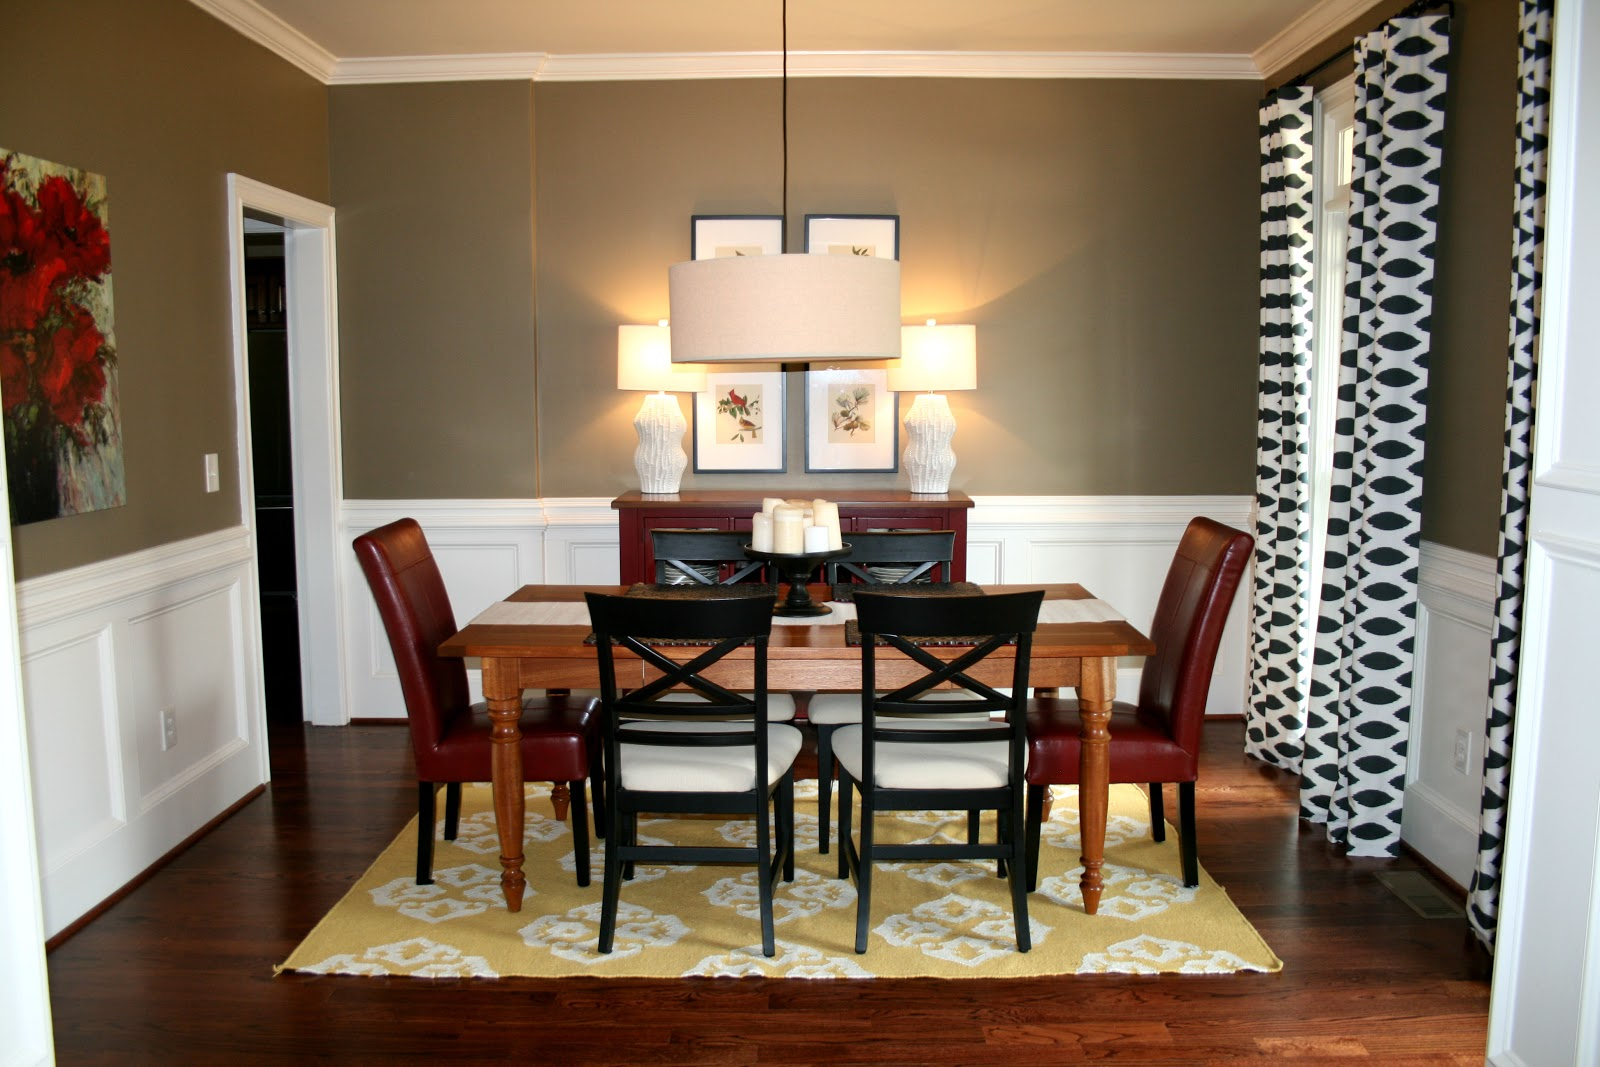 The bozeman bungalow dining room updates for Best dining rooms images